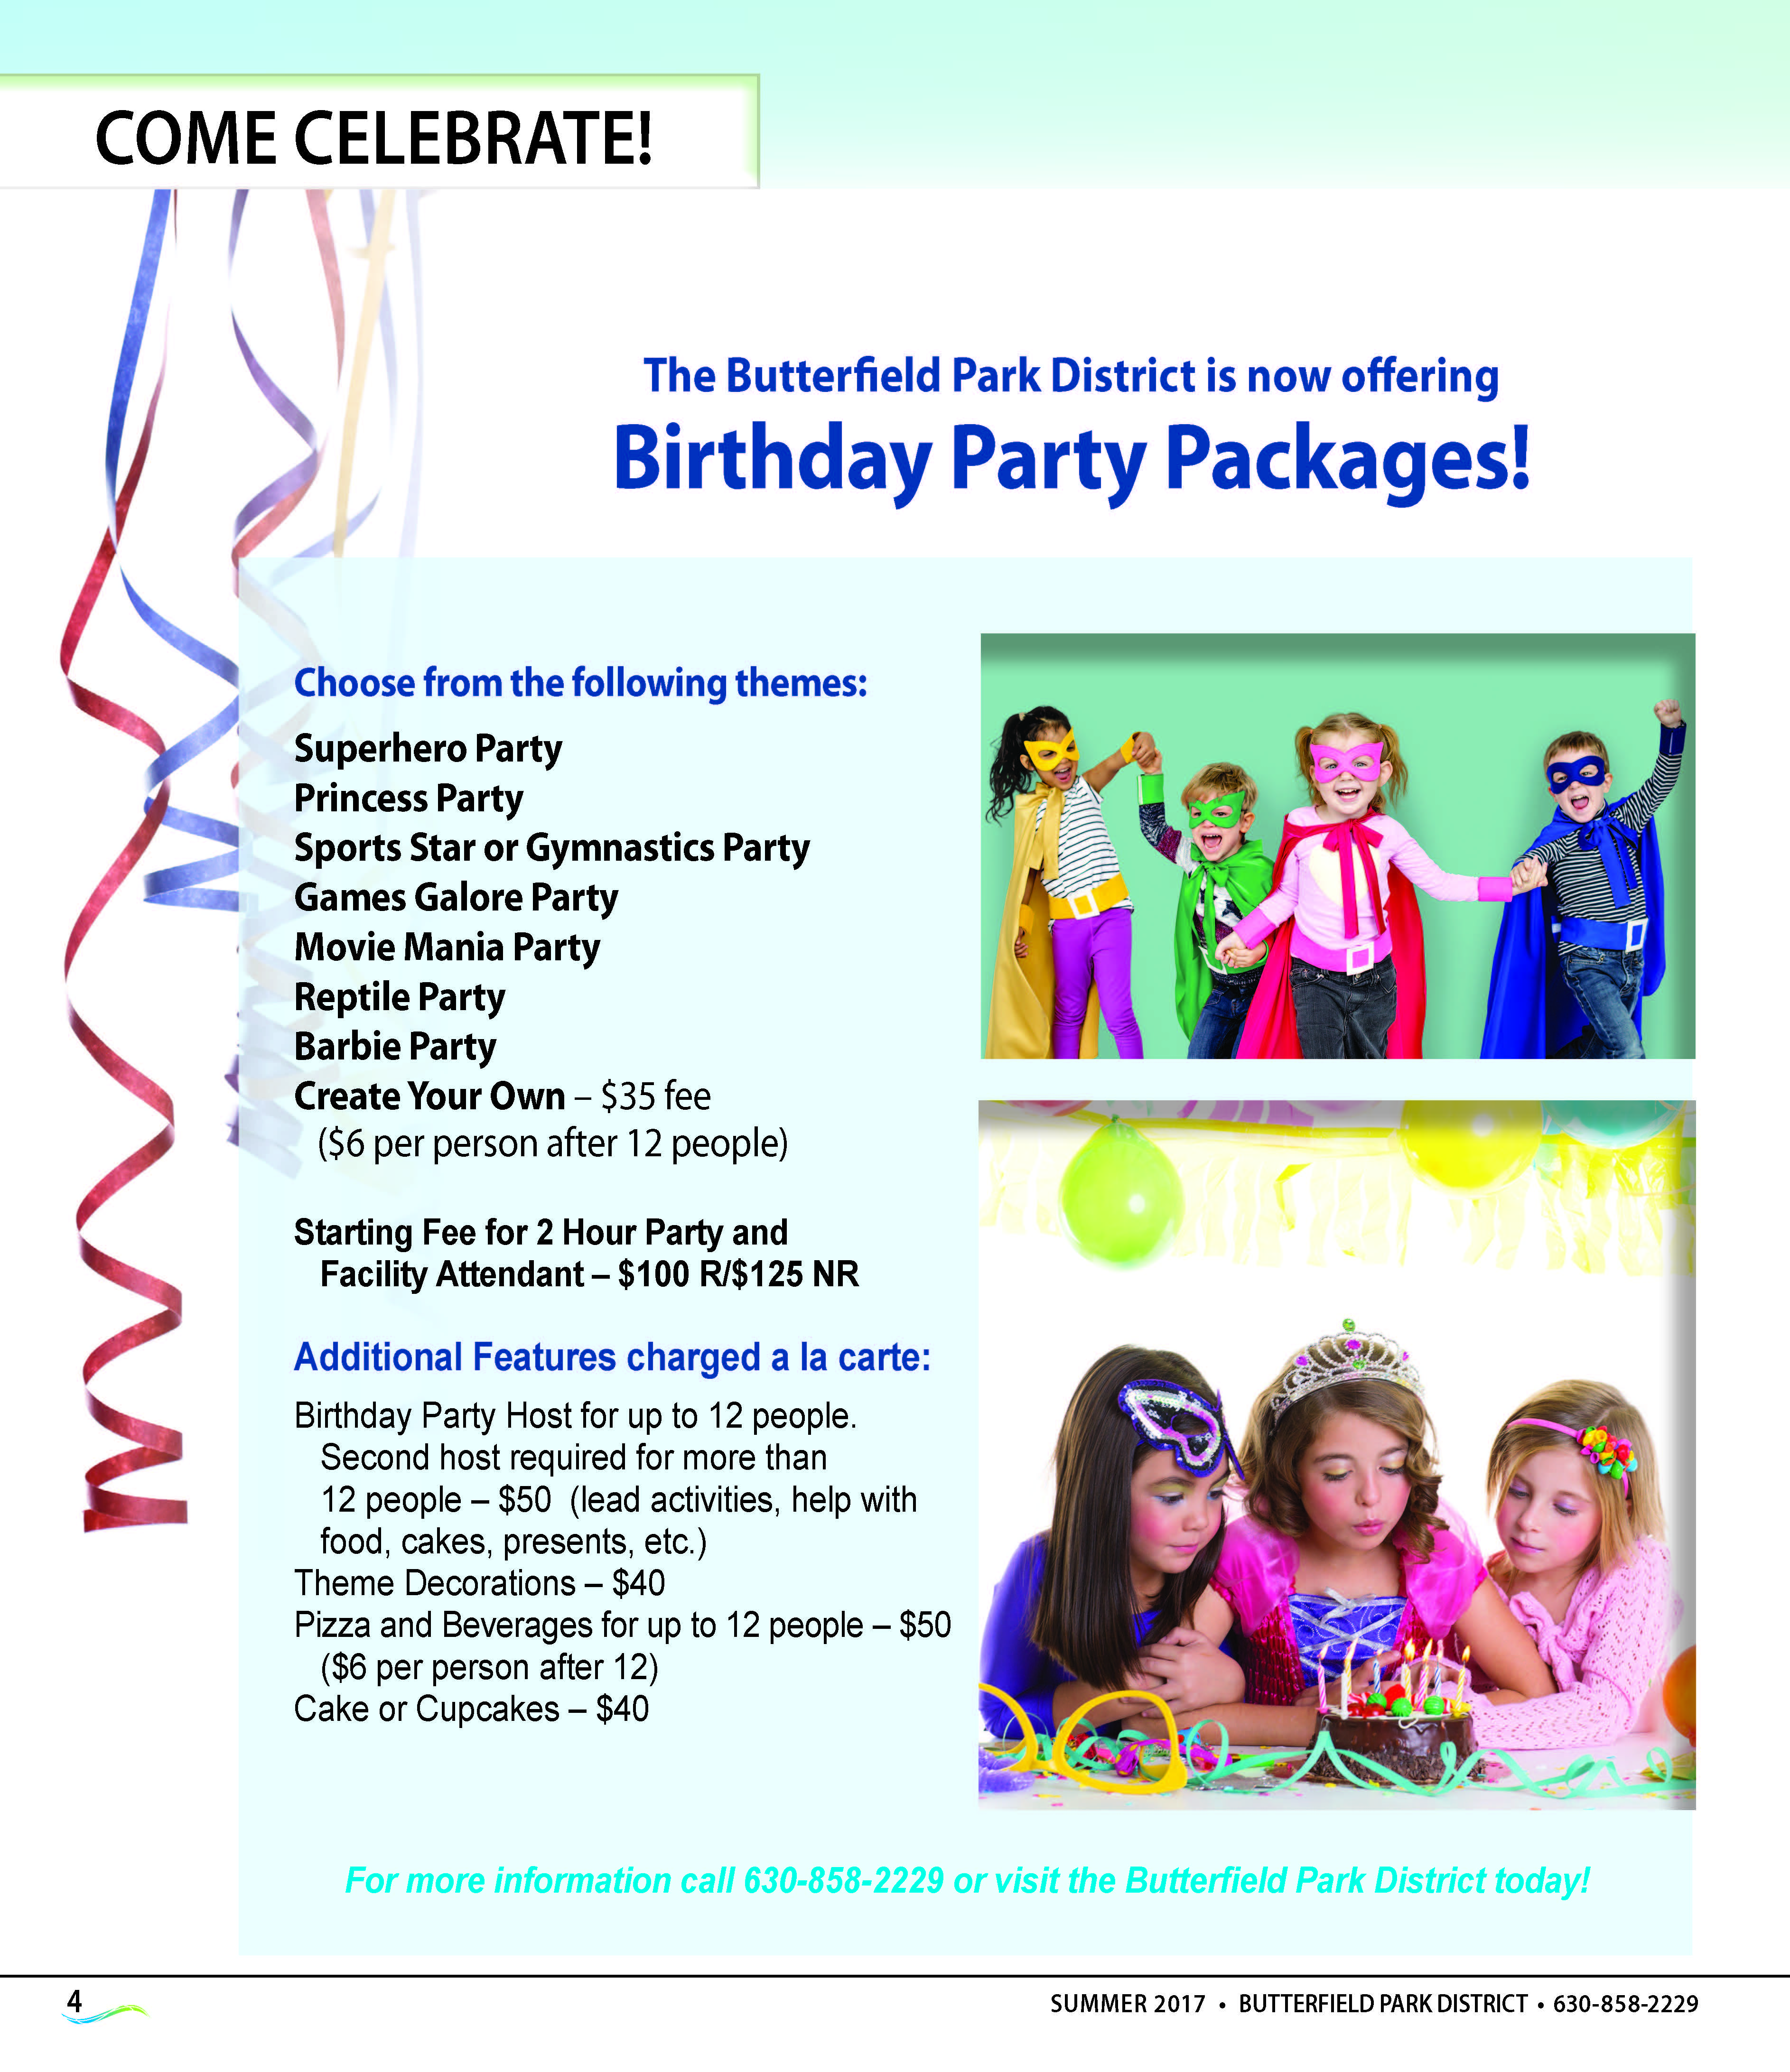 Rentals and Party Packages